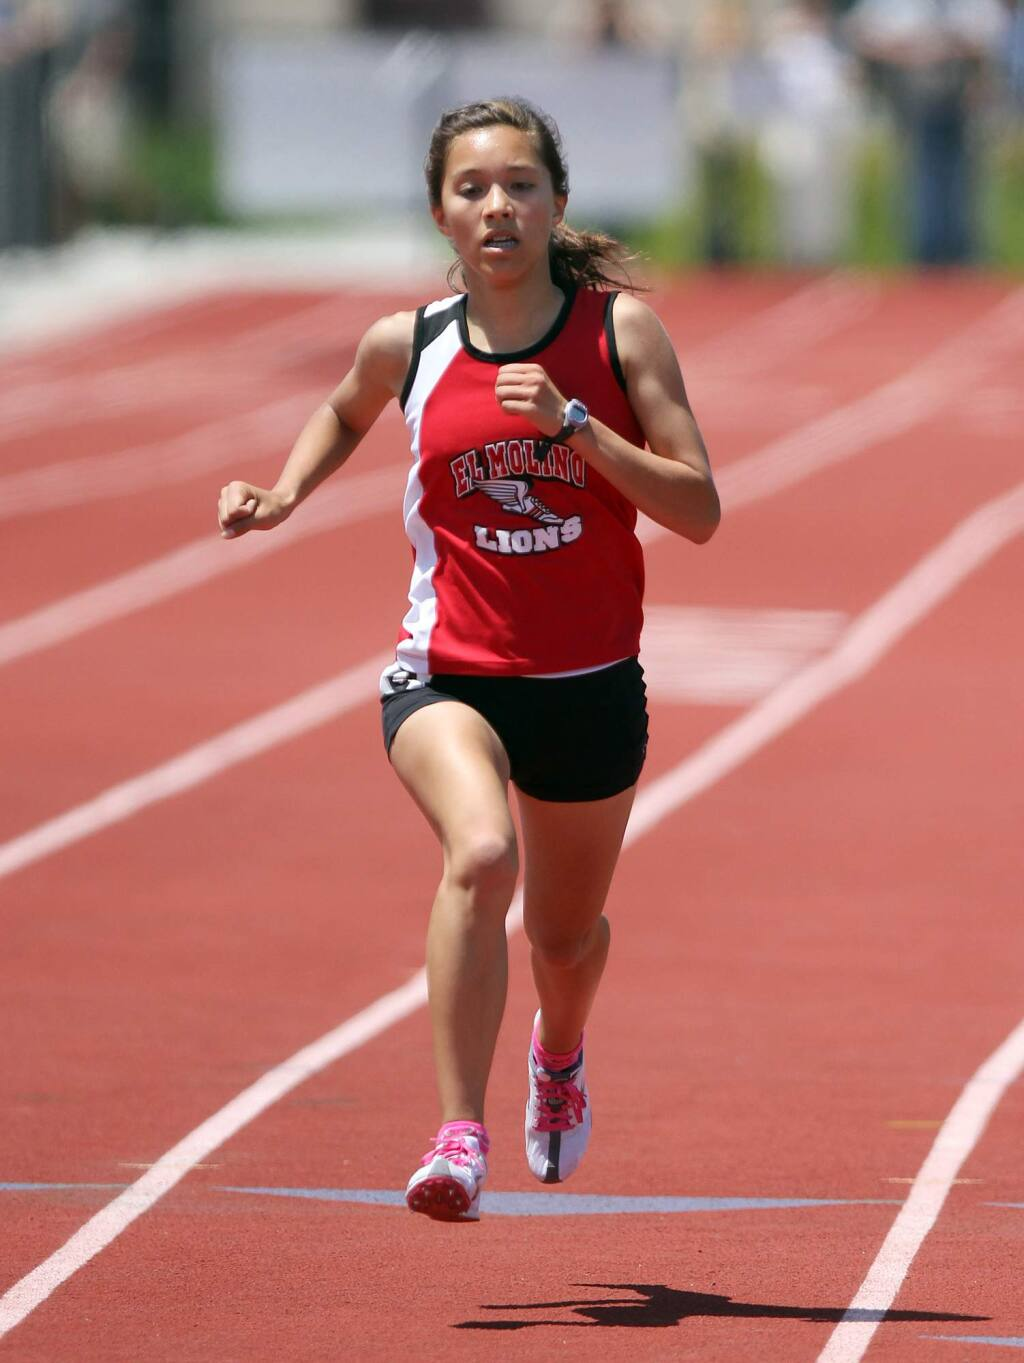 El Molino's Nicole Lane came in more then 10 seconds before the rest in the 3,200-meter run with a time of 11:17.67 during the NCS track meet held at Rancho Cotate High School, May 21, 2011. (PD File)